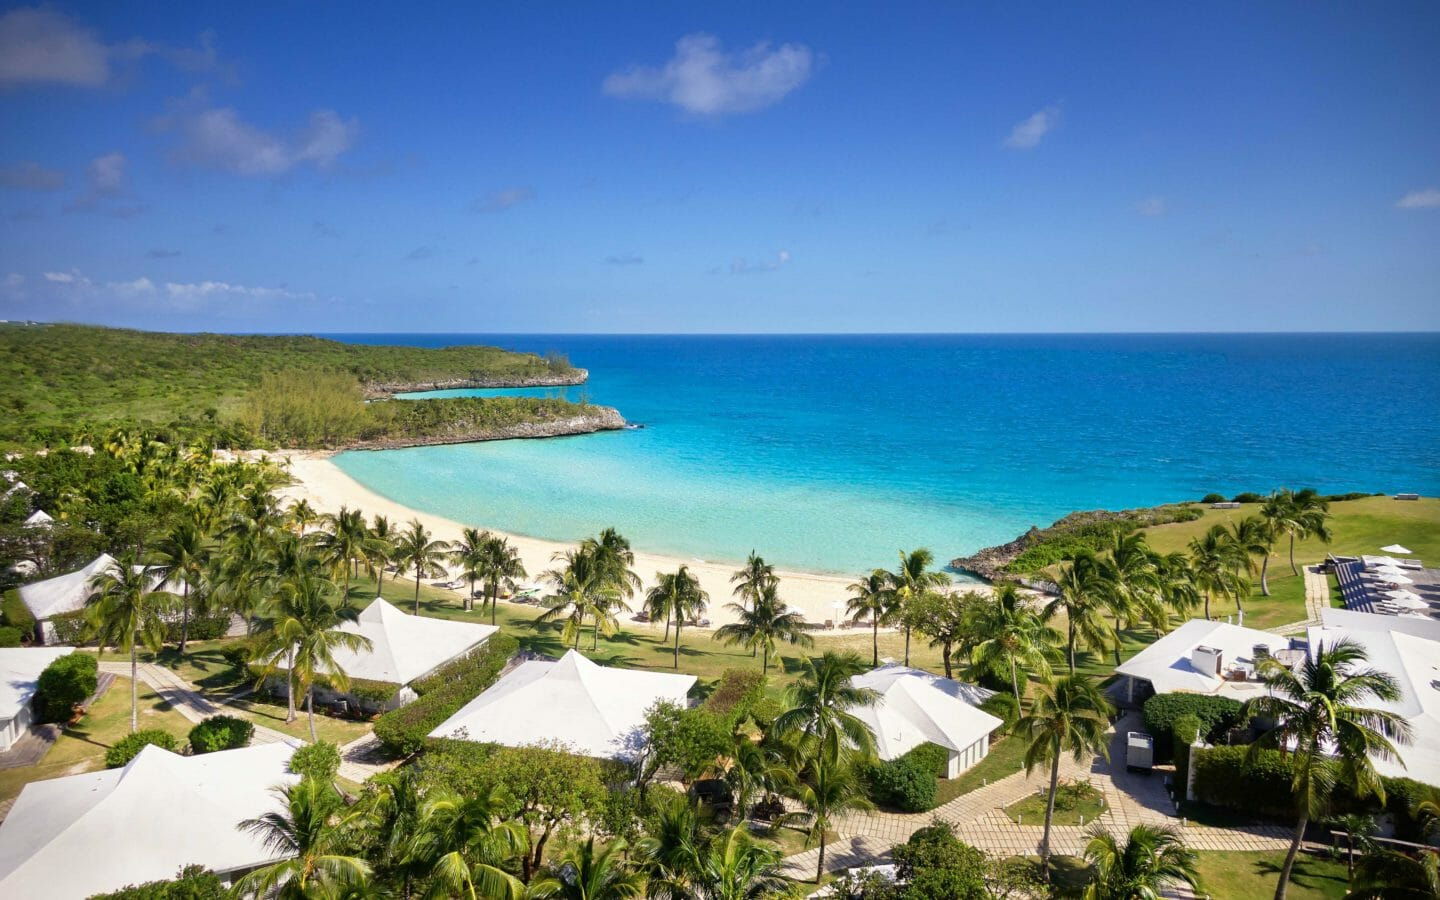 The Cove Eleuthera Bahamas Resort